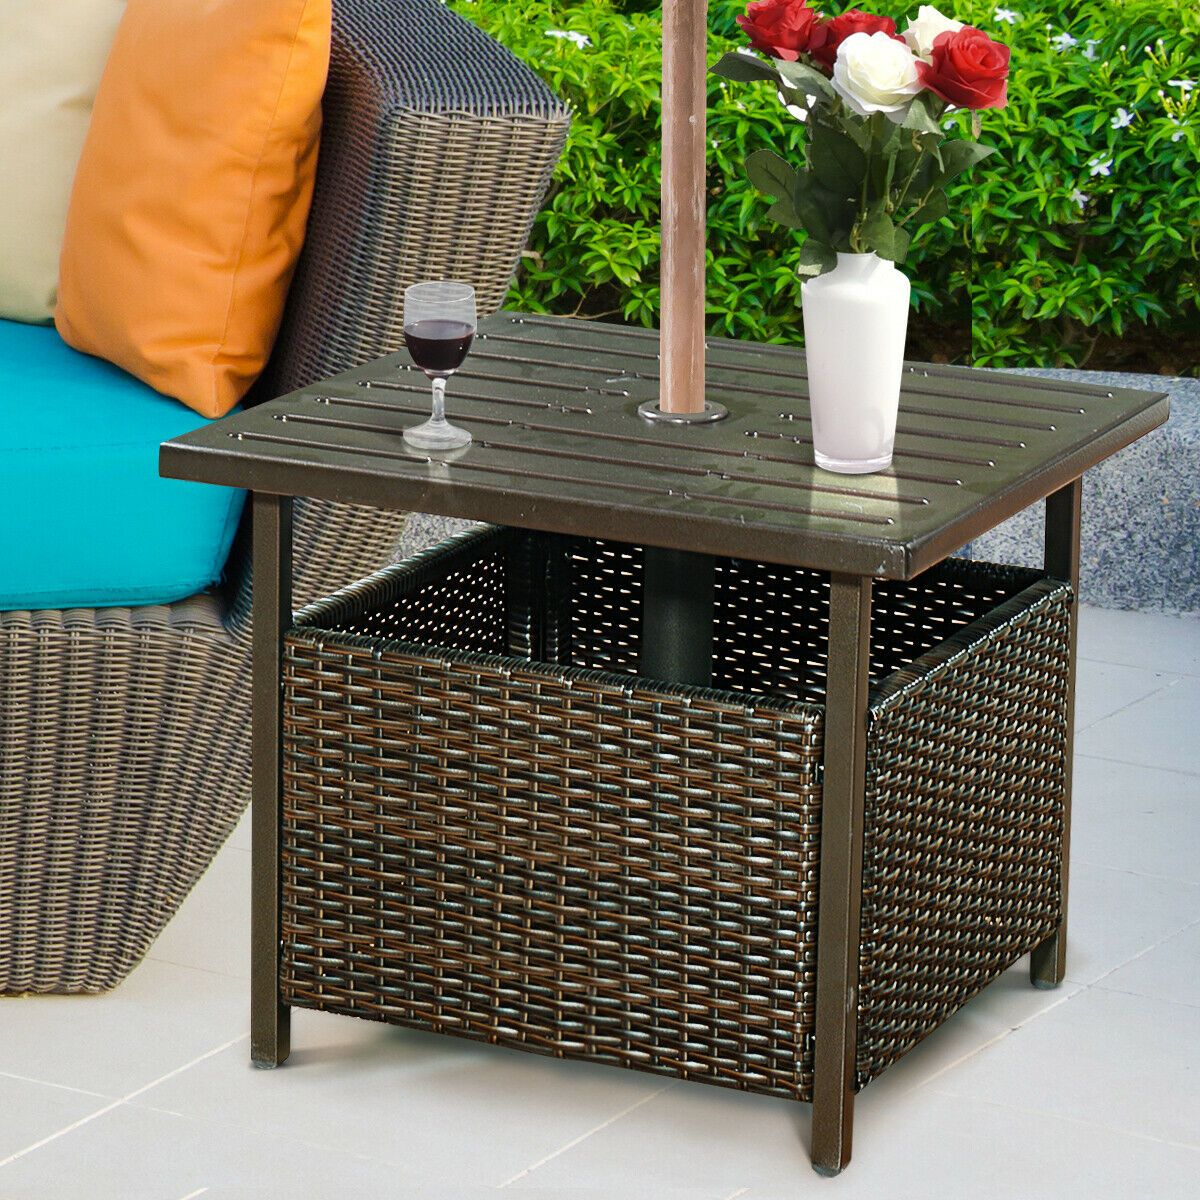 Free 2 Day Shipping Buy Costway Brown Rattan Wicker Steel Side Table Outdoor Furniture Deck Garden Patio In 2020 Metal Side Table Outdoor Furniture Wicker Side Table